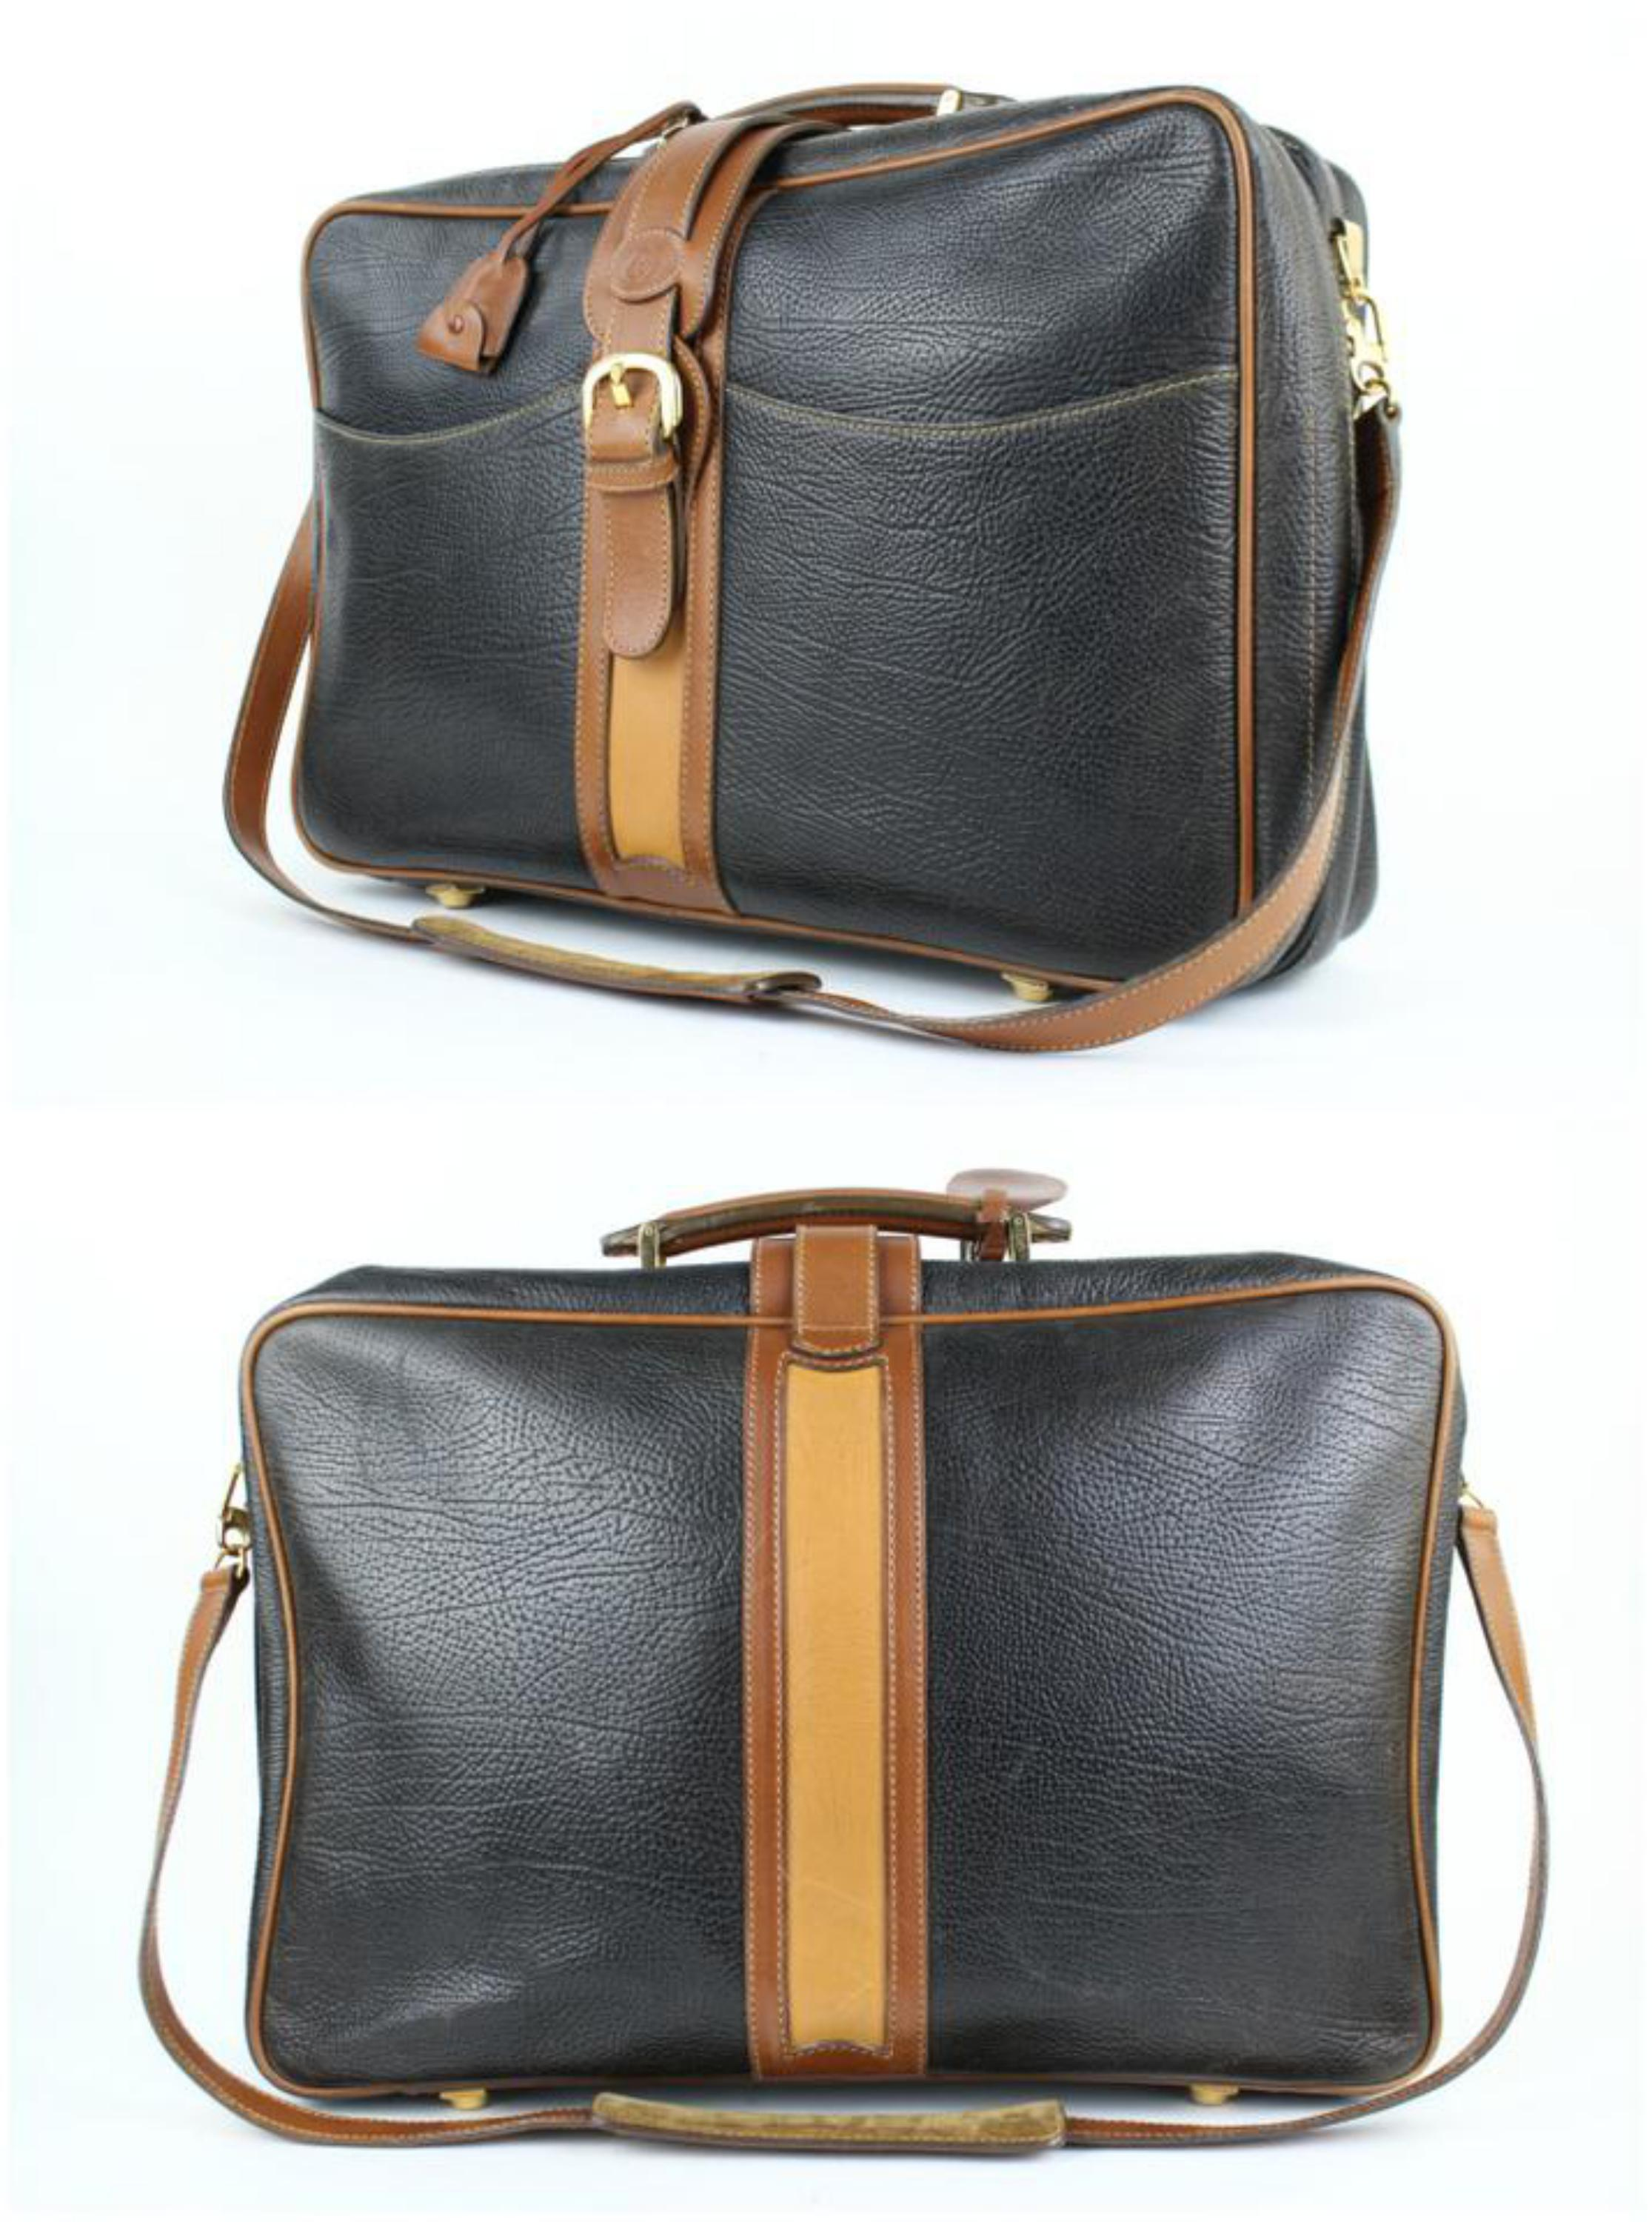 2be5c4e4b4d Gucci 2way Suitcase Carry-on 99gt24 Black Leather Weekend Travel Bag For  Sale at 1stdibs